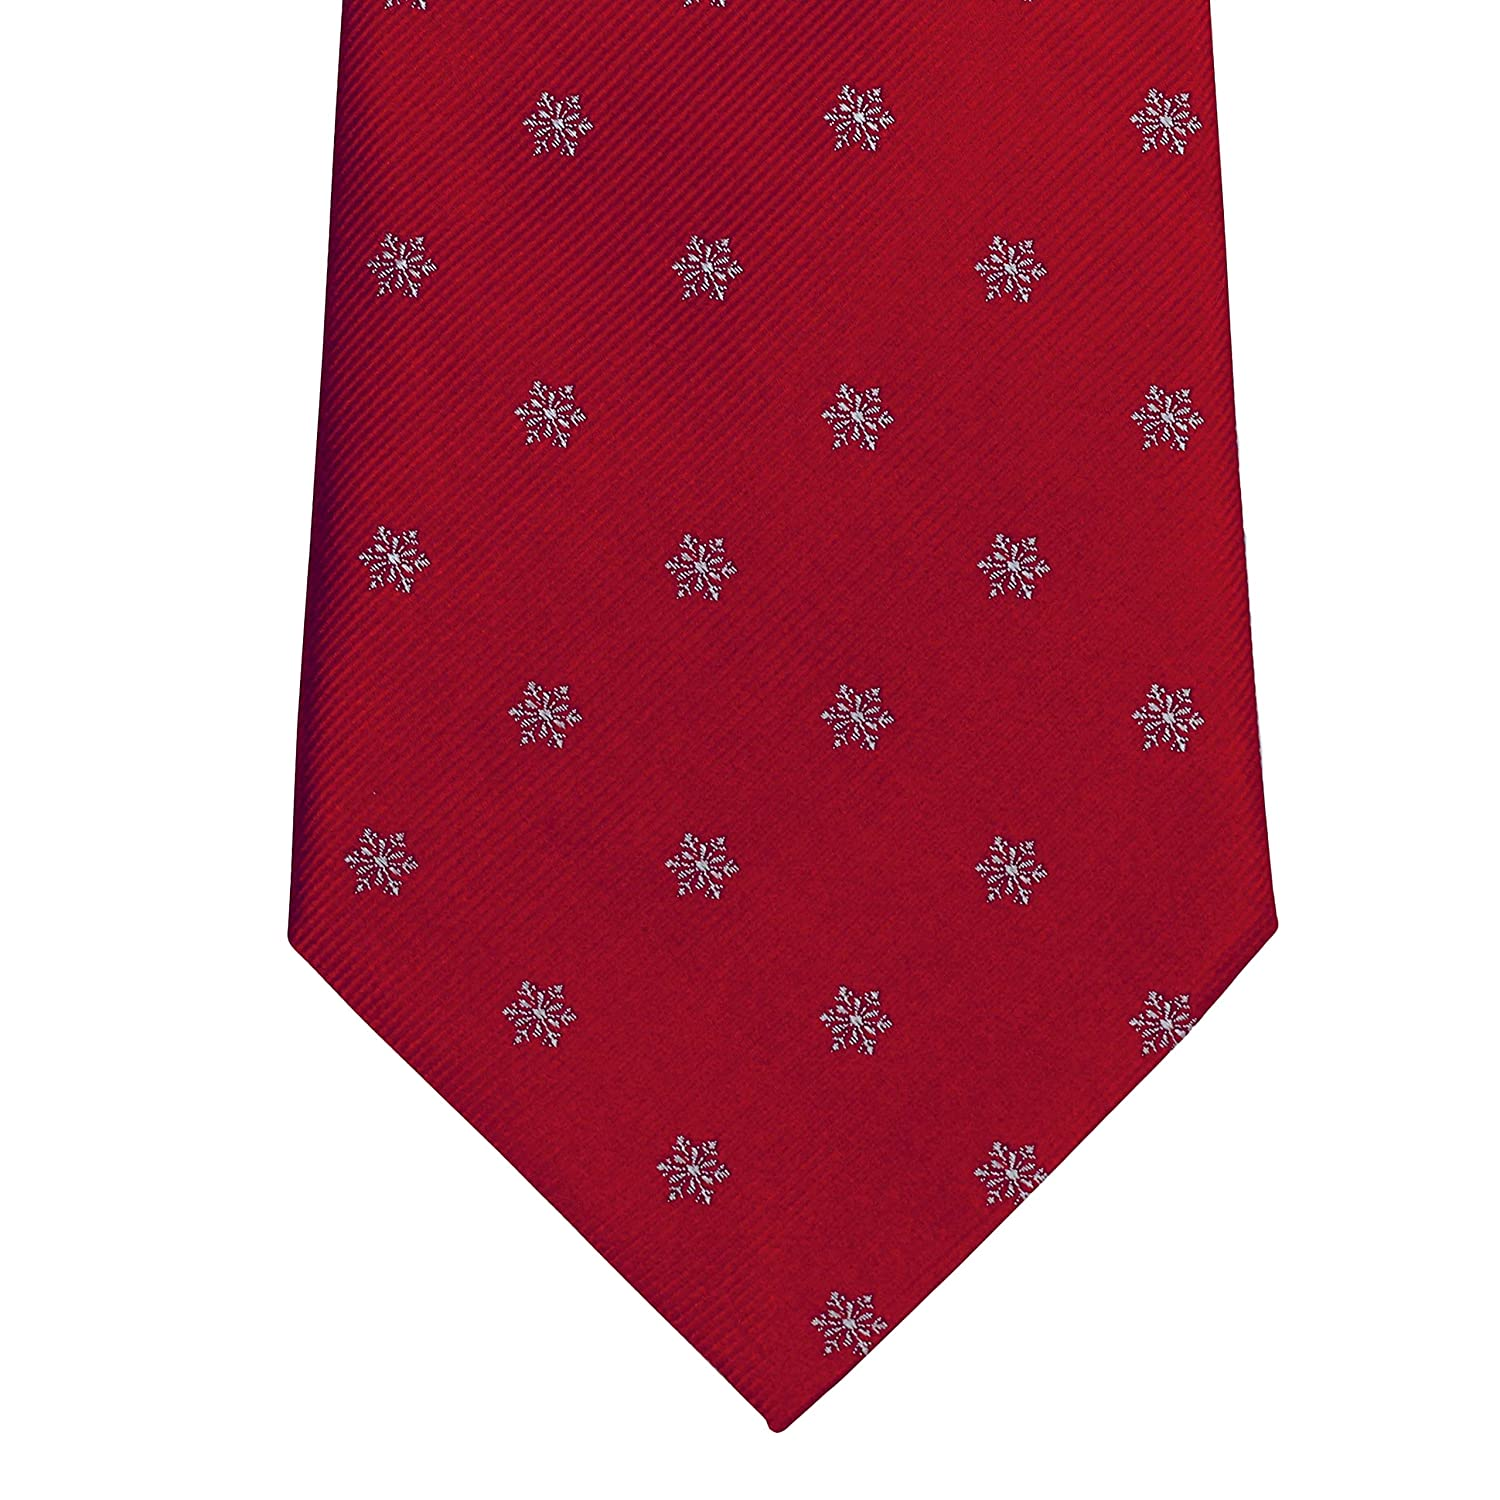 100/% Silk Extra Long Tie for Big and Tall Men Red Snowflake Holiday Christmas Novelty Silk